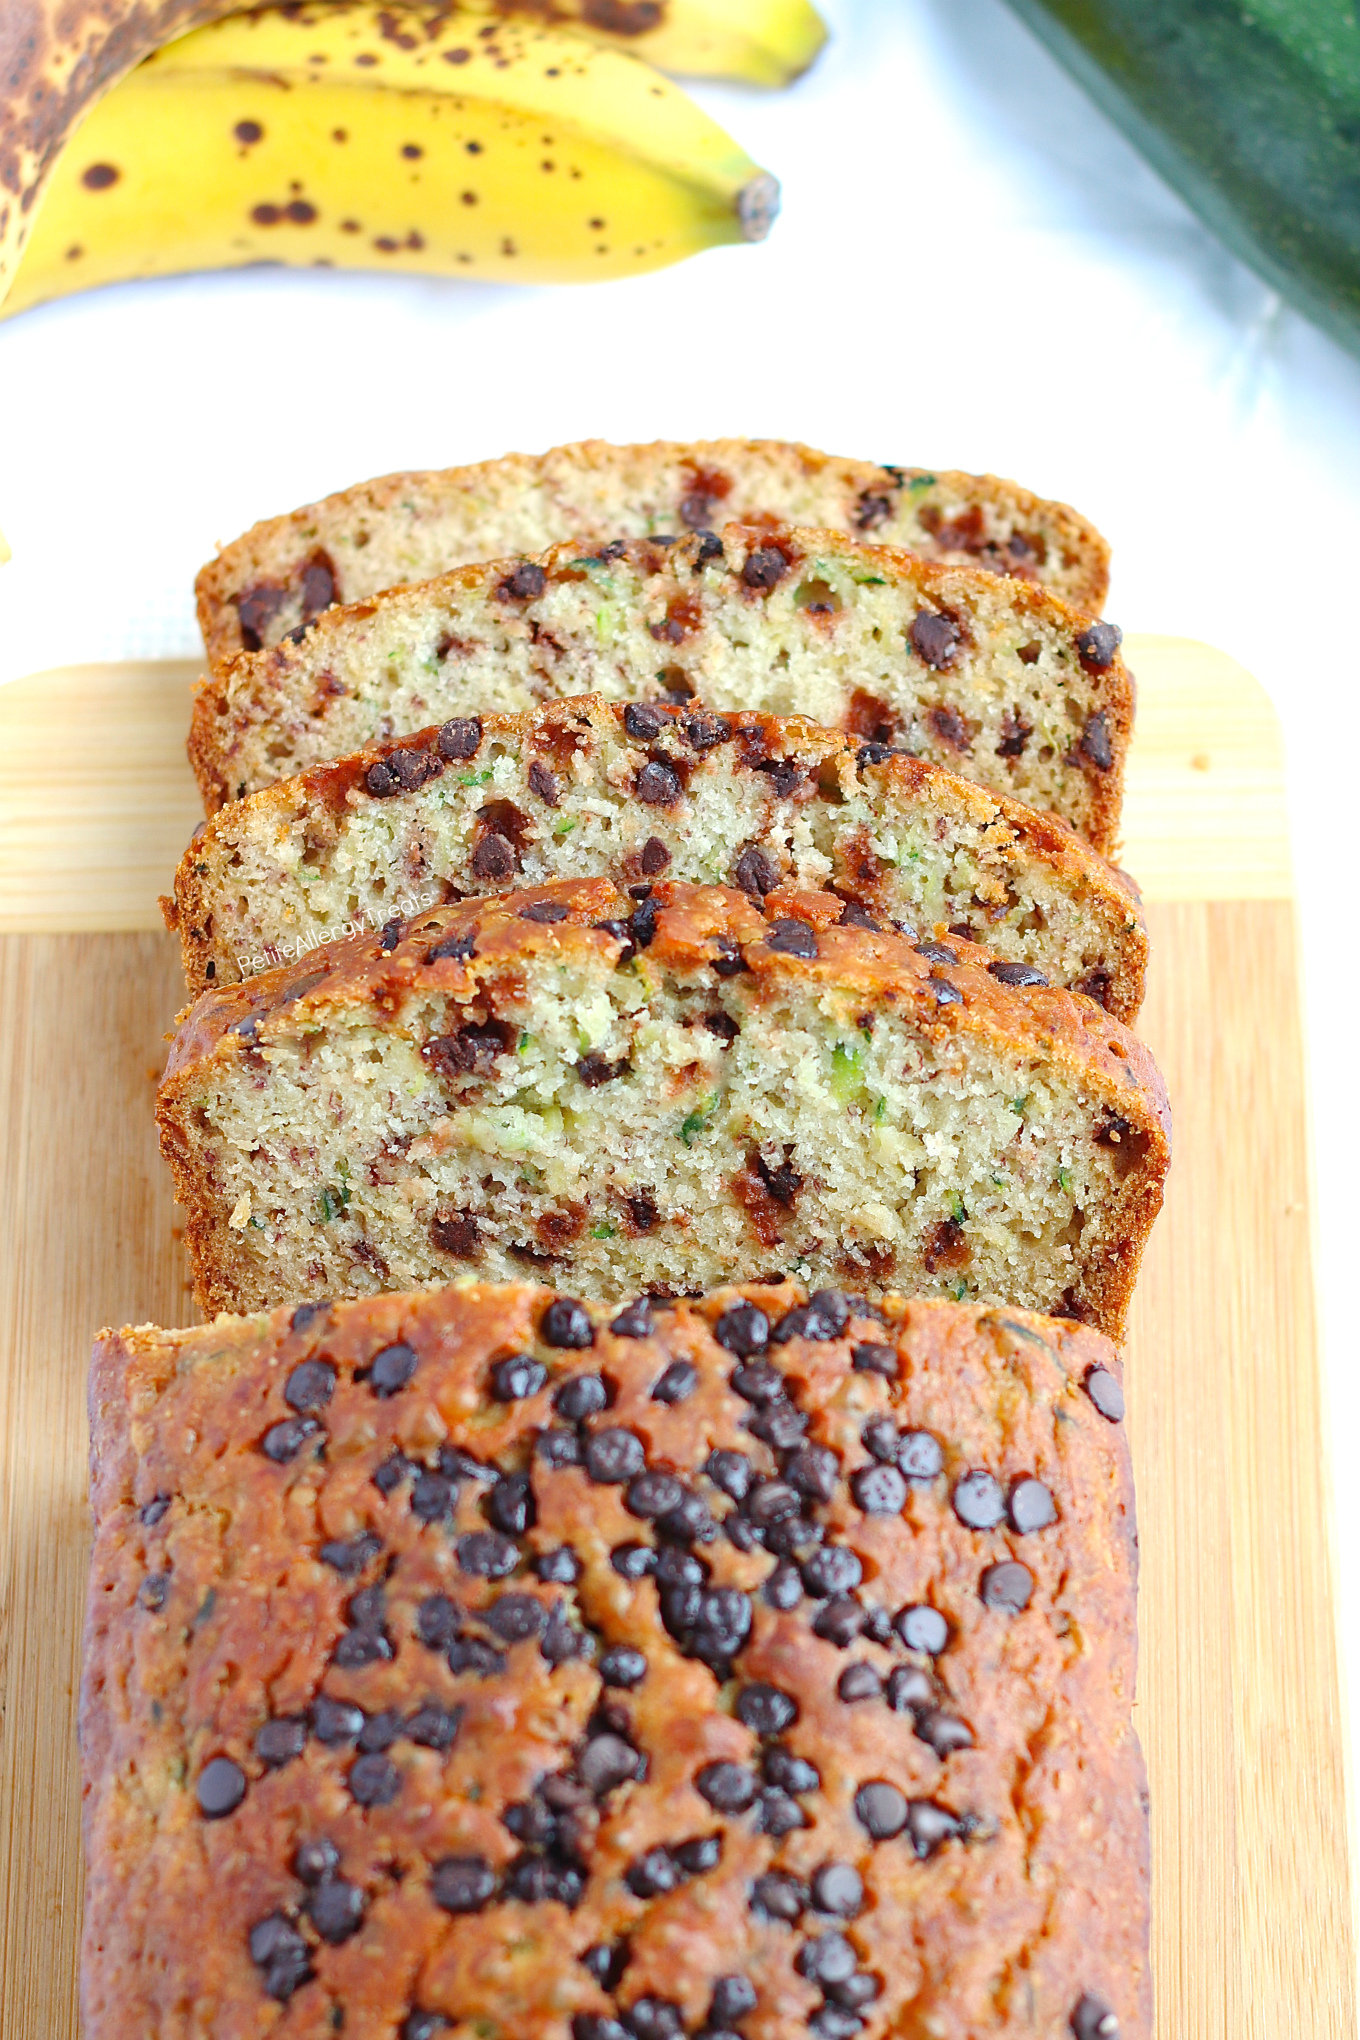 Egg free Gluten Free Zucchini Bread Recipe (dairy free Vegan)- Easy one bowl gluten free chocolate chip zucchini bread. #glutenfree, #dairyfree, #eggfree, #vegan